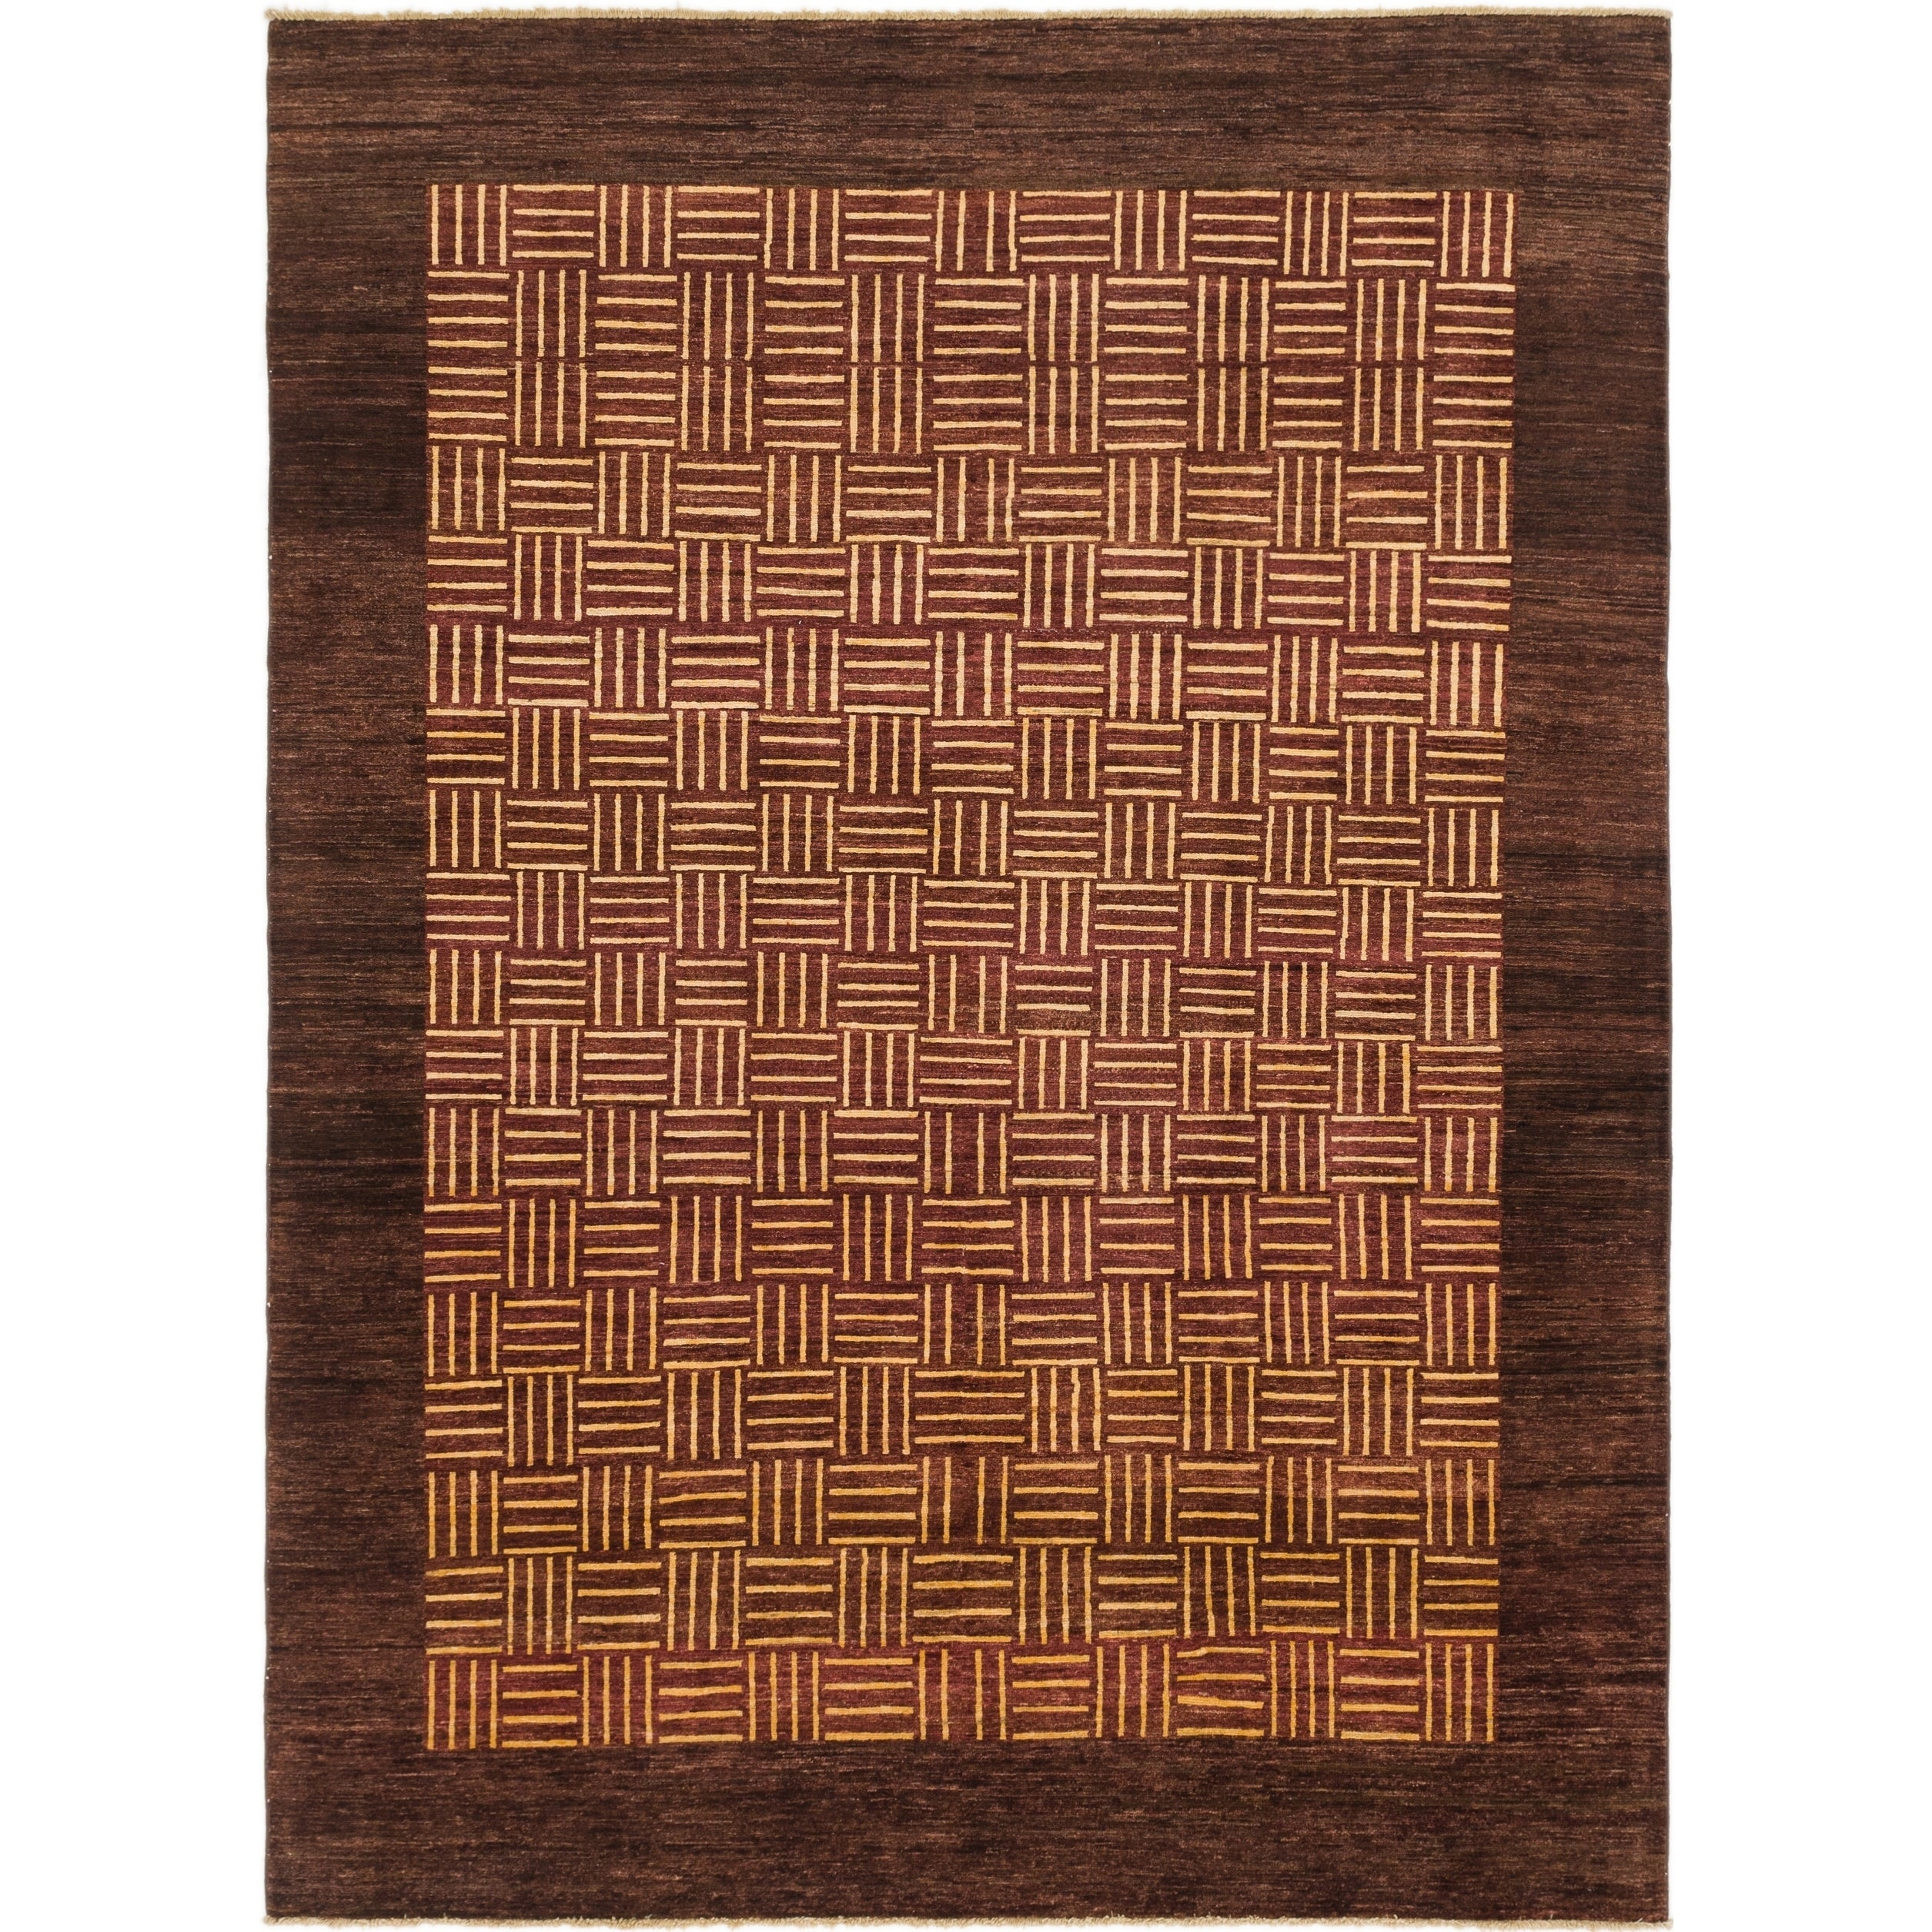 Hand Knotted Kashkuli Gabbeh Wool Area Rug - 7 6 x 10 (Plum Red - 7 6 x 10)